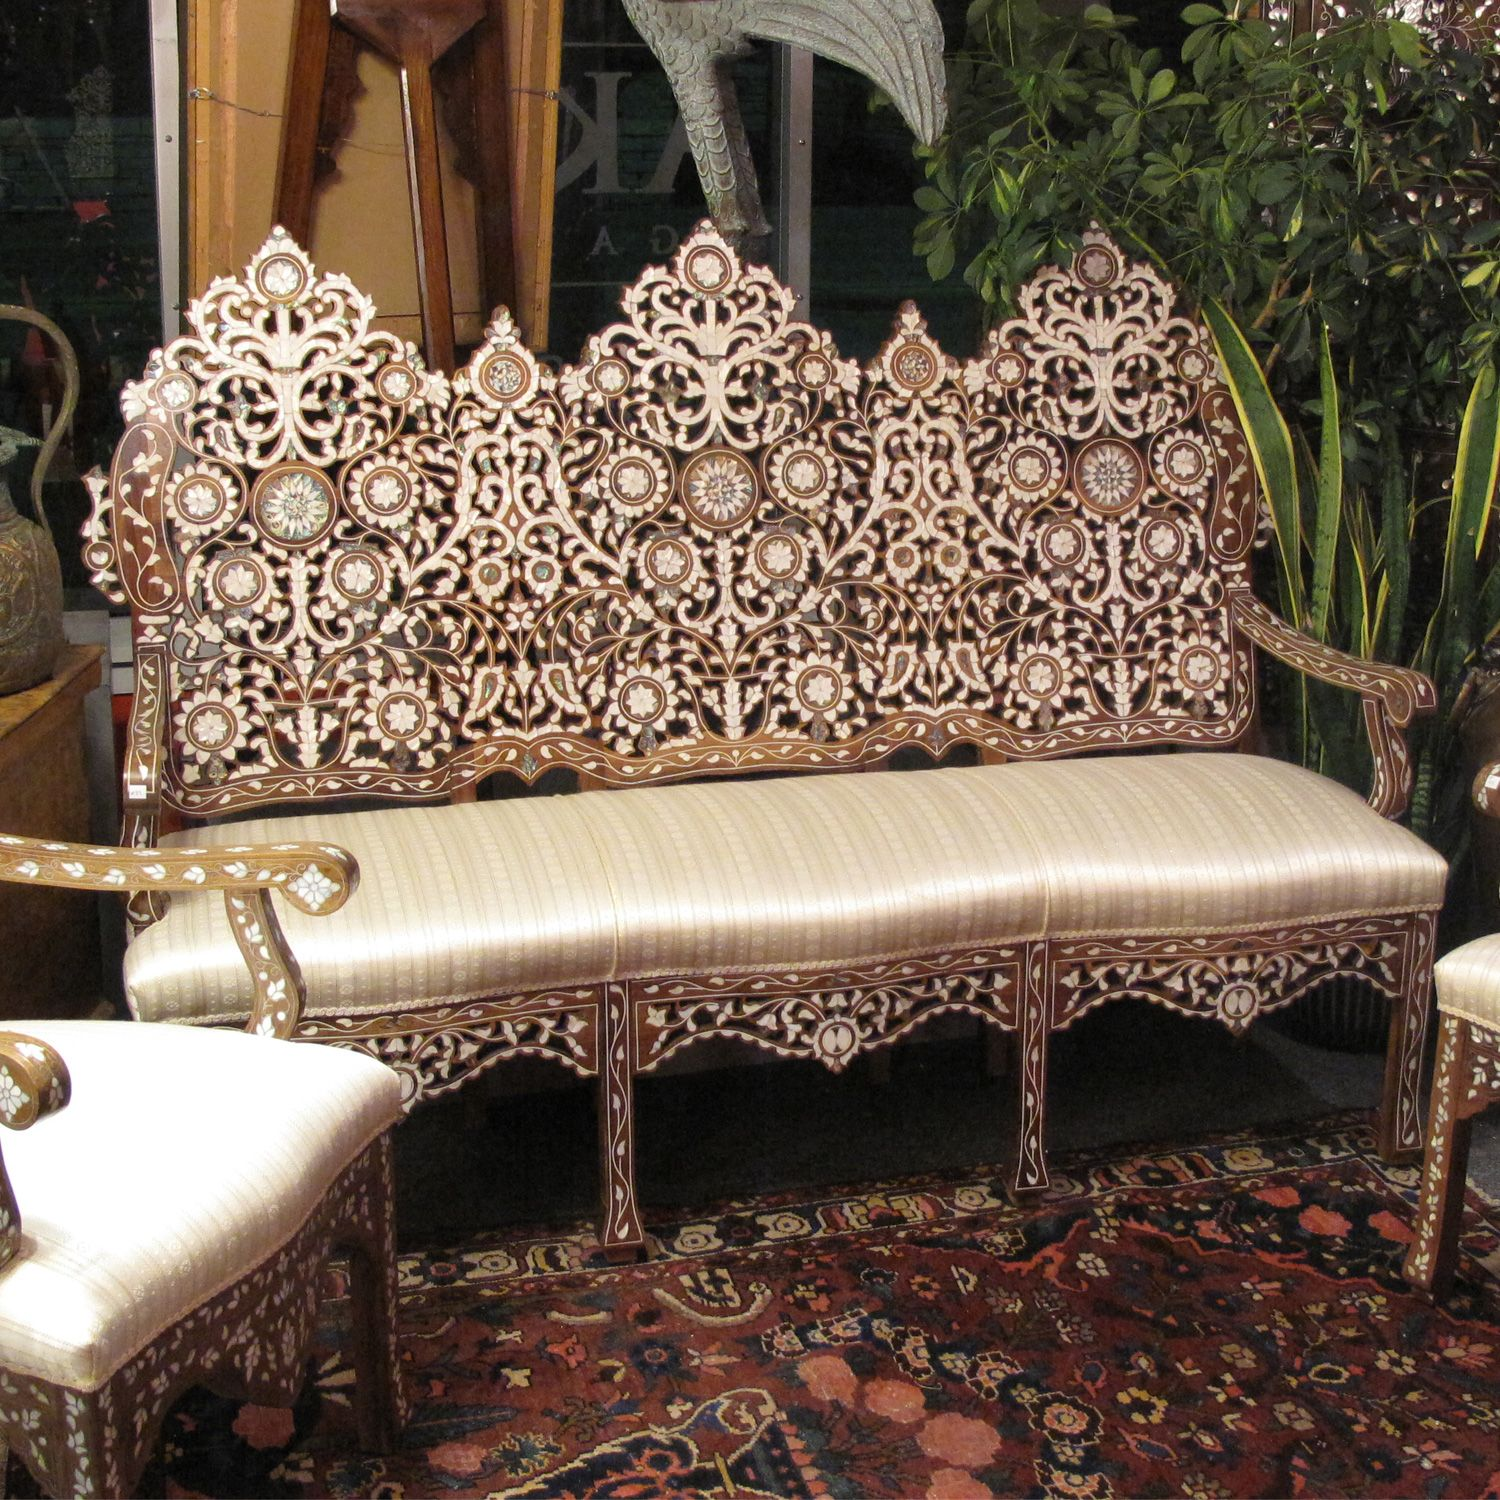 Moroccan Sofa Design 90 Inch Slipcover Style 1106 Syrian Damascene Inlaid